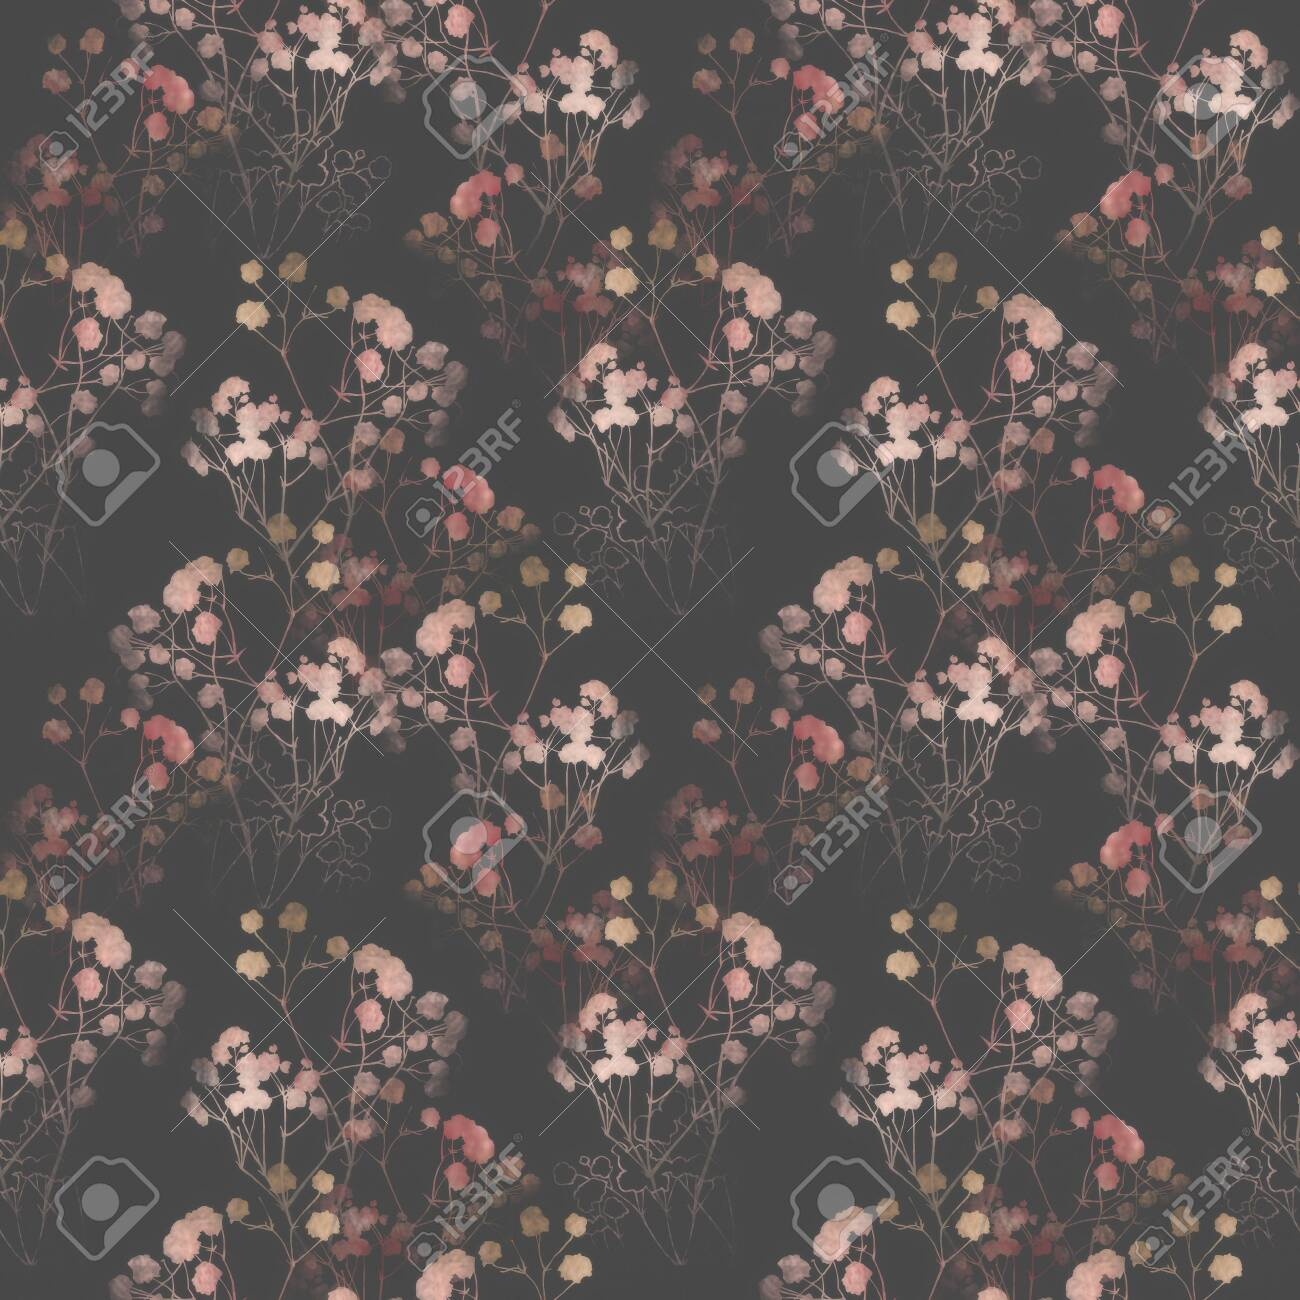 Floral pattern, pink small flowers brunshes. on white gray and black background. Hand drawn illustration, texture pattern. - 132732190